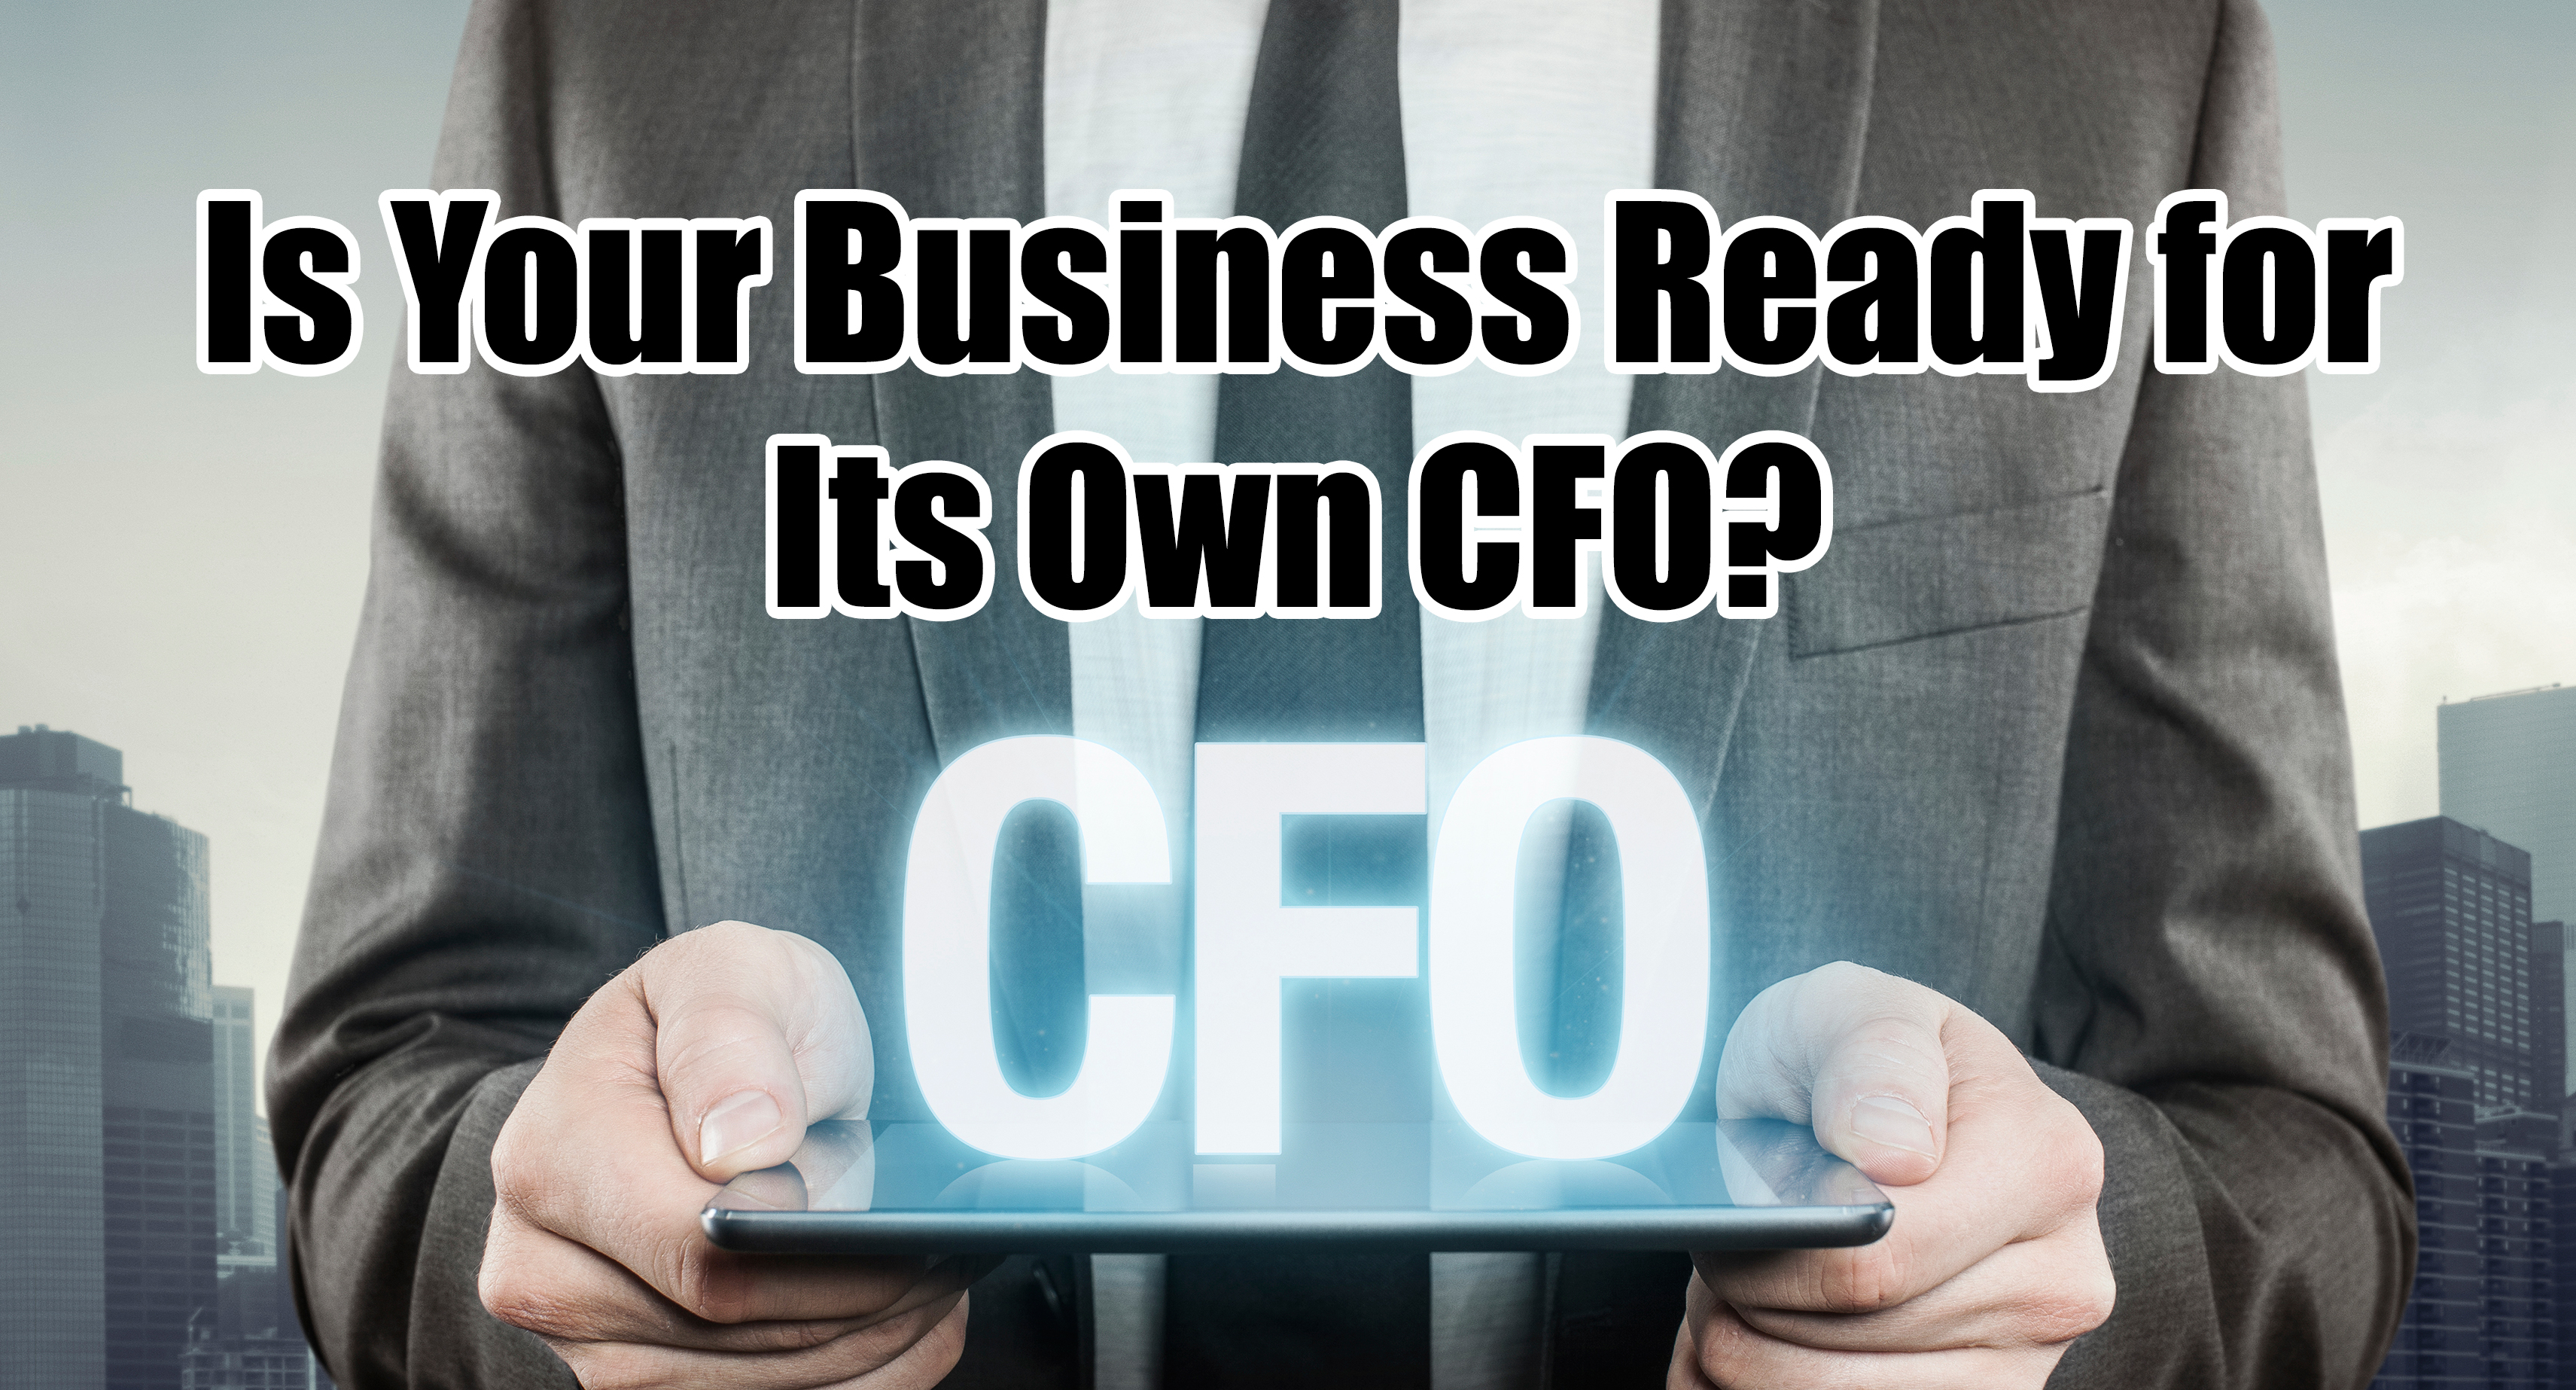 Is your business ready for its own CFO?